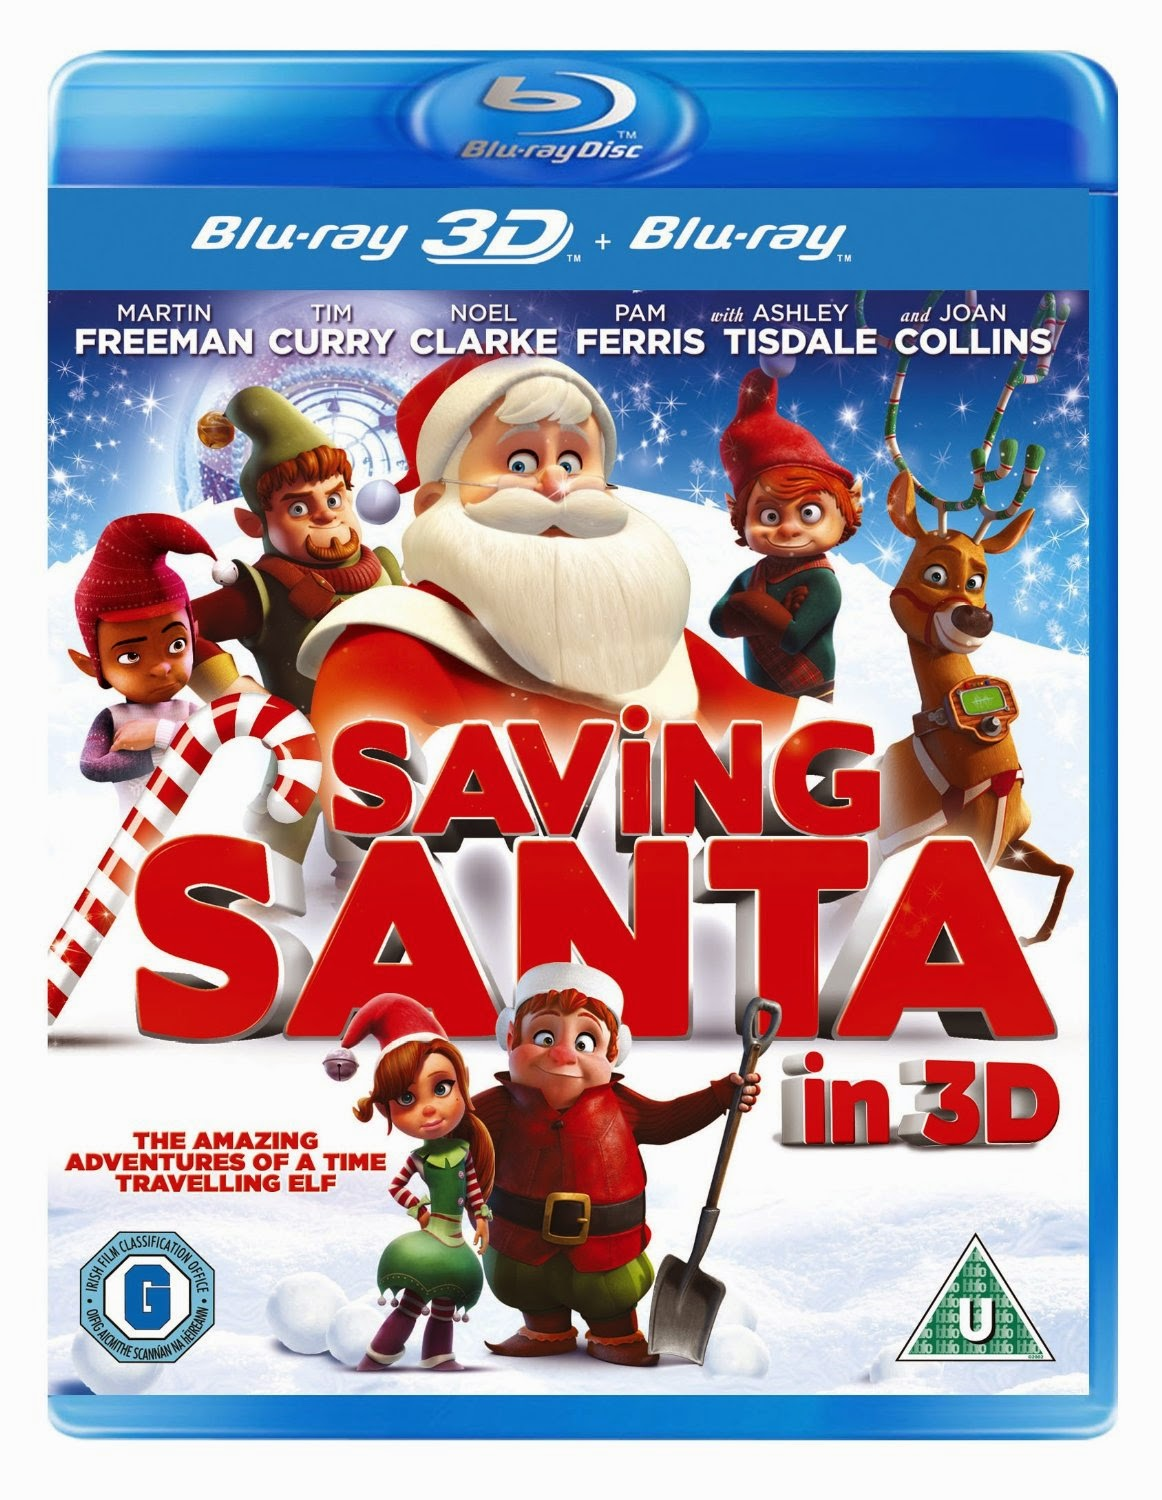 SAVING SANTA ON DVD FROM OCTOBER 27TH..